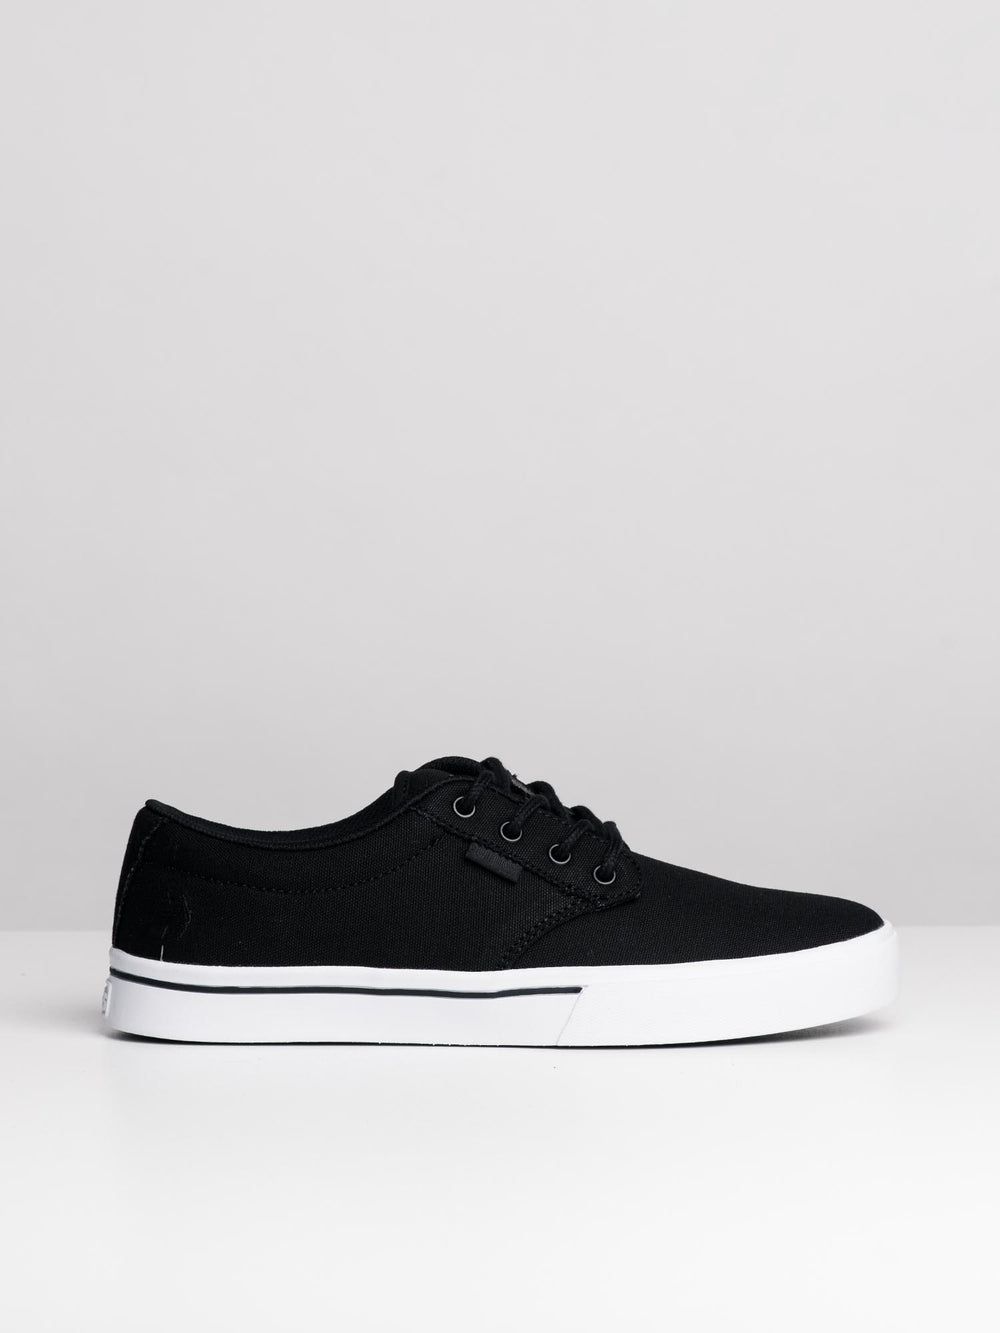 MENS JAMESON 2 ECO - BLACK/WHITE